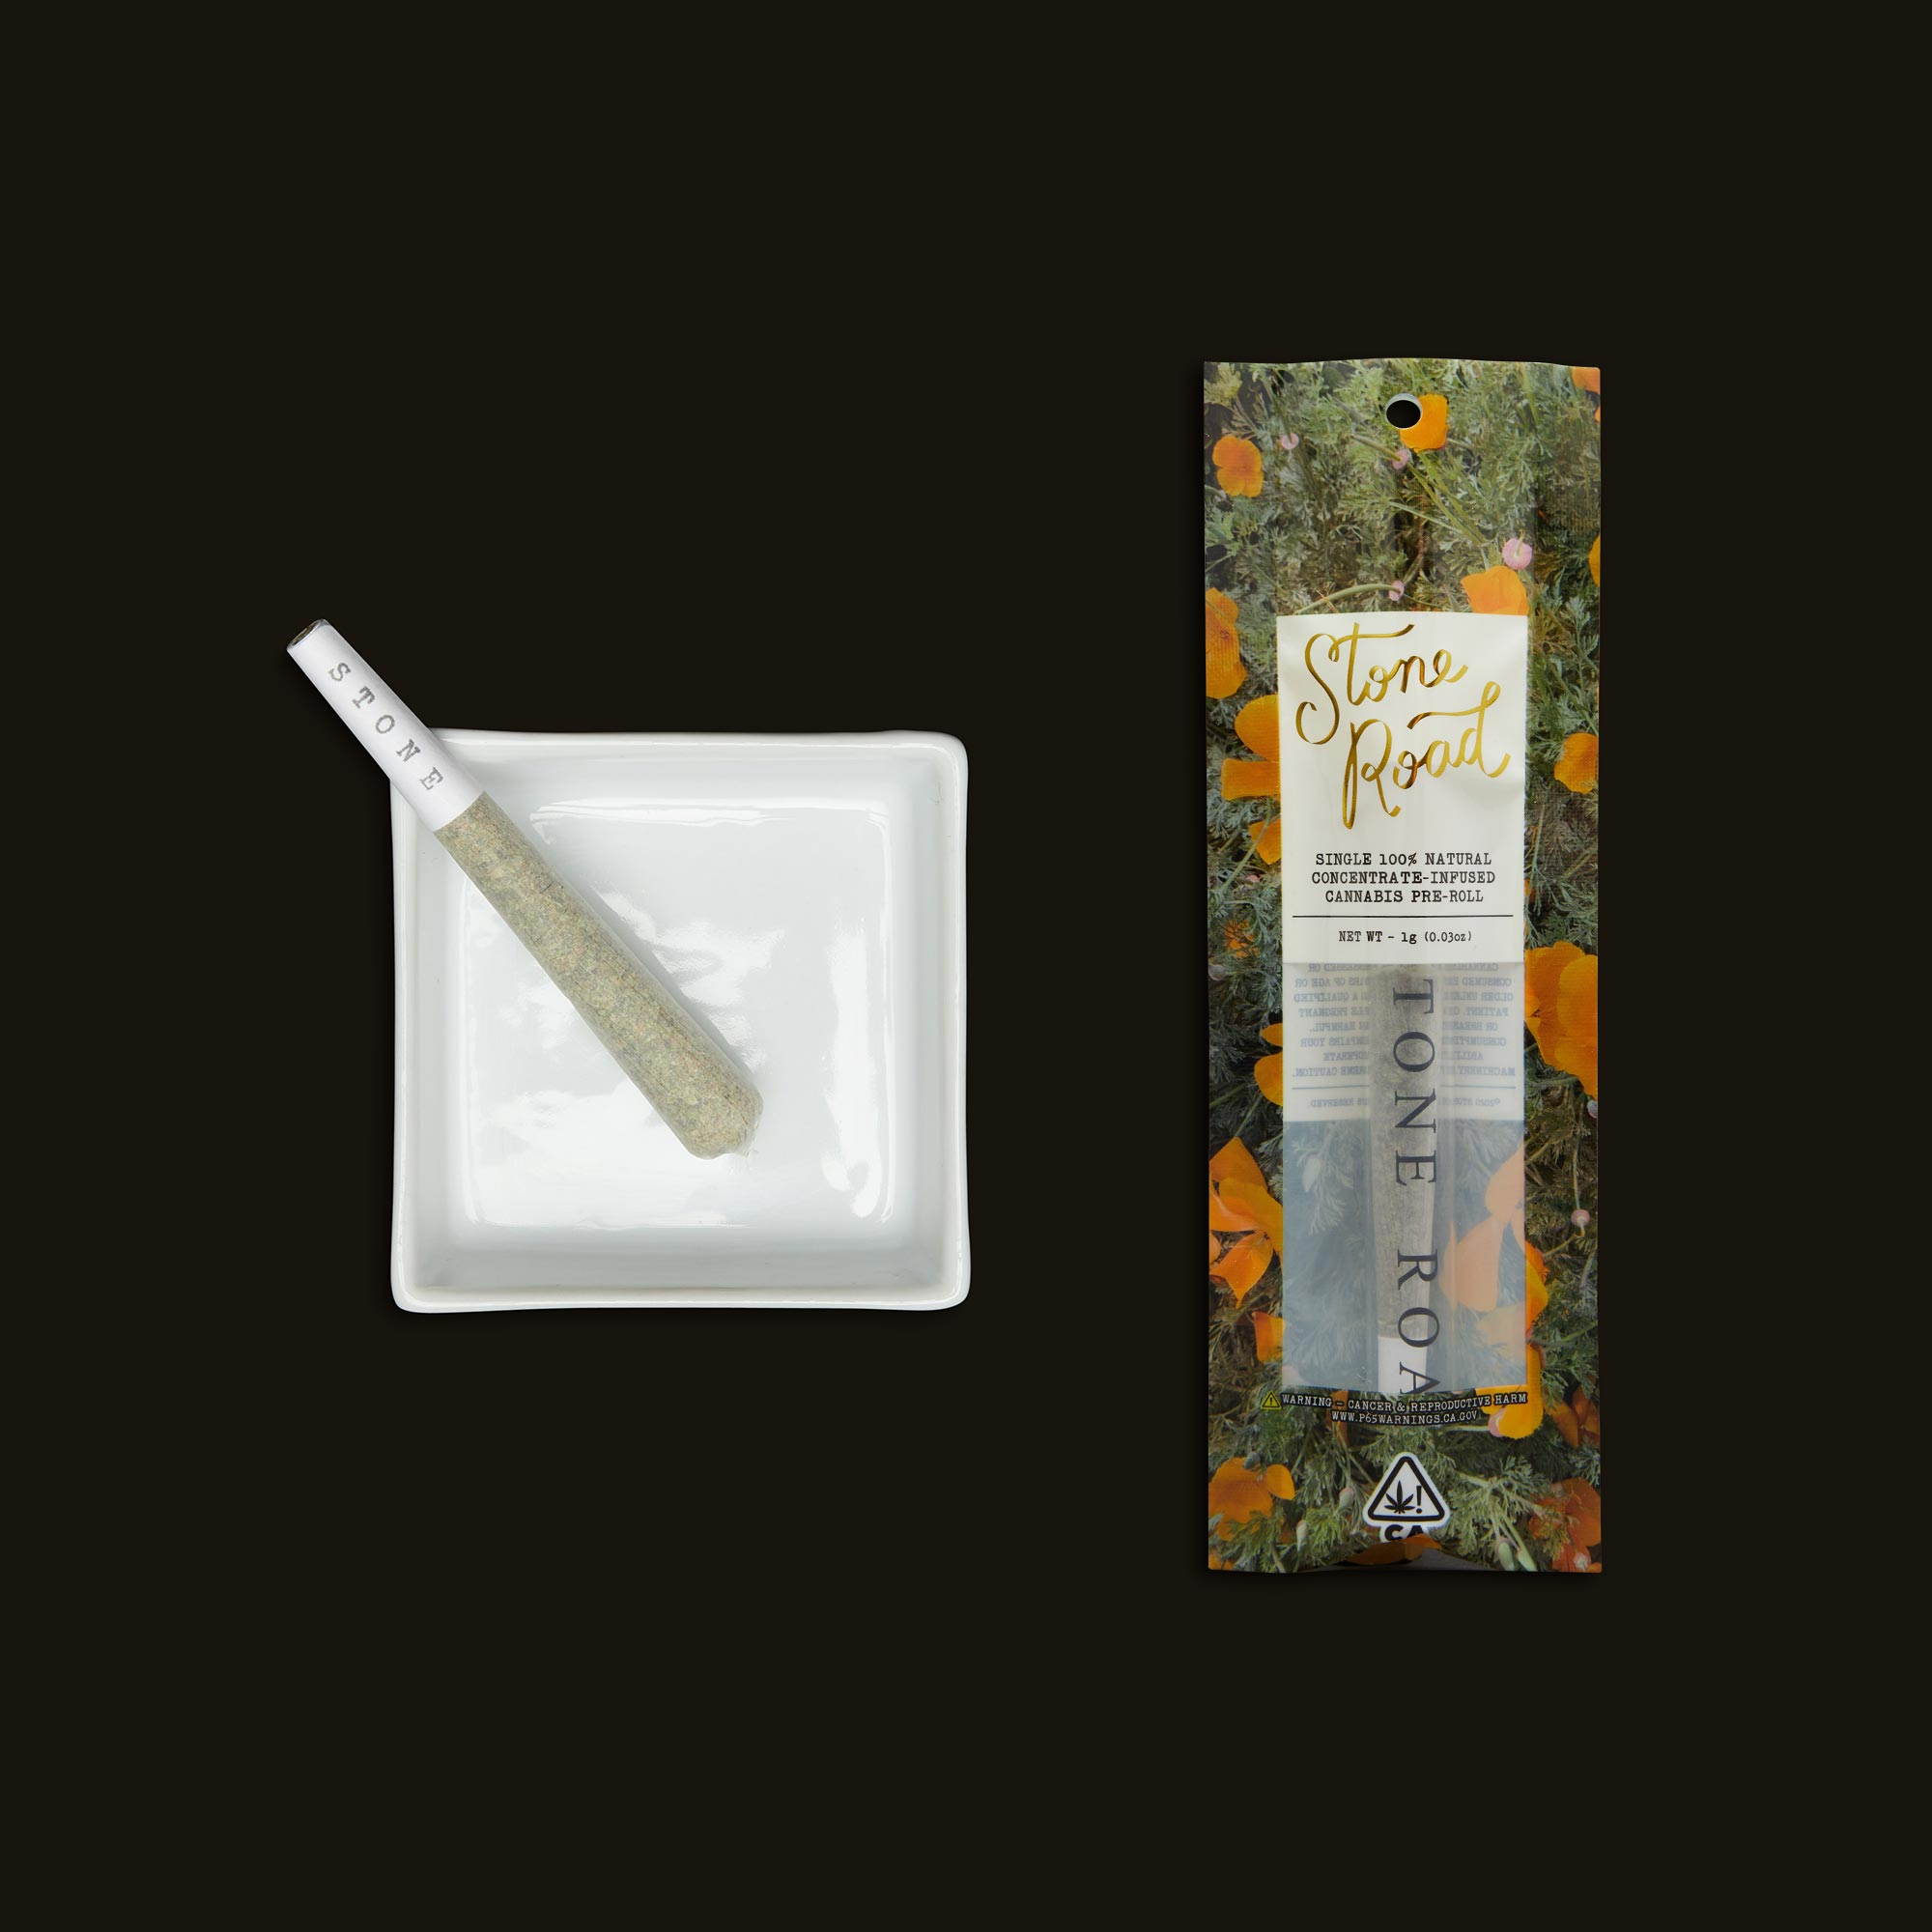 Stone Road Acapulco Gold Infused Pre-Roll